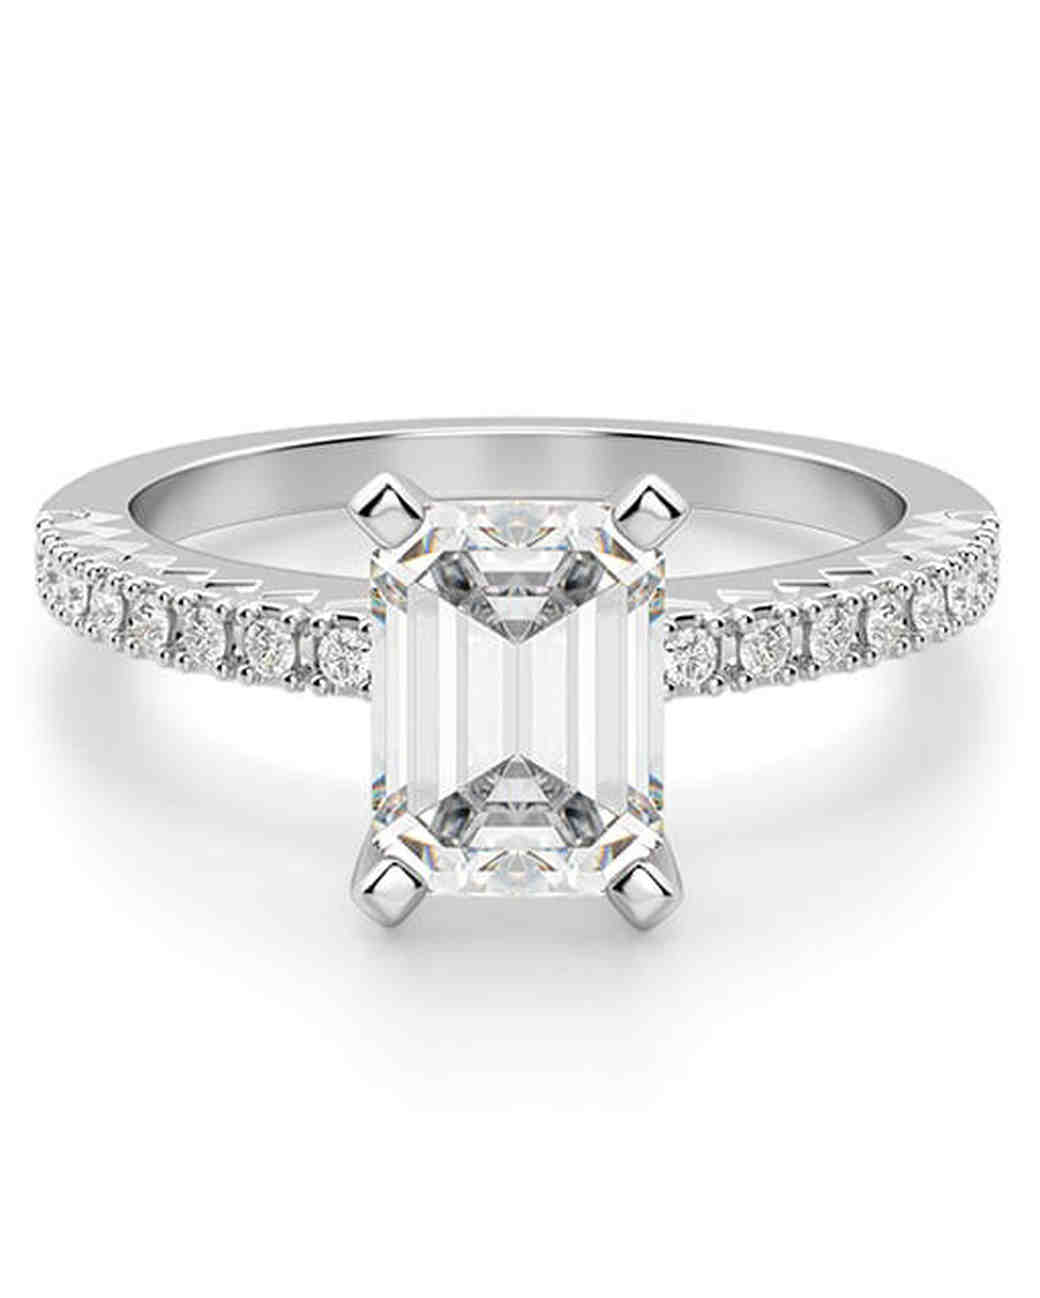 Engagement Rings Under $1,000 That Still Feel Luxe